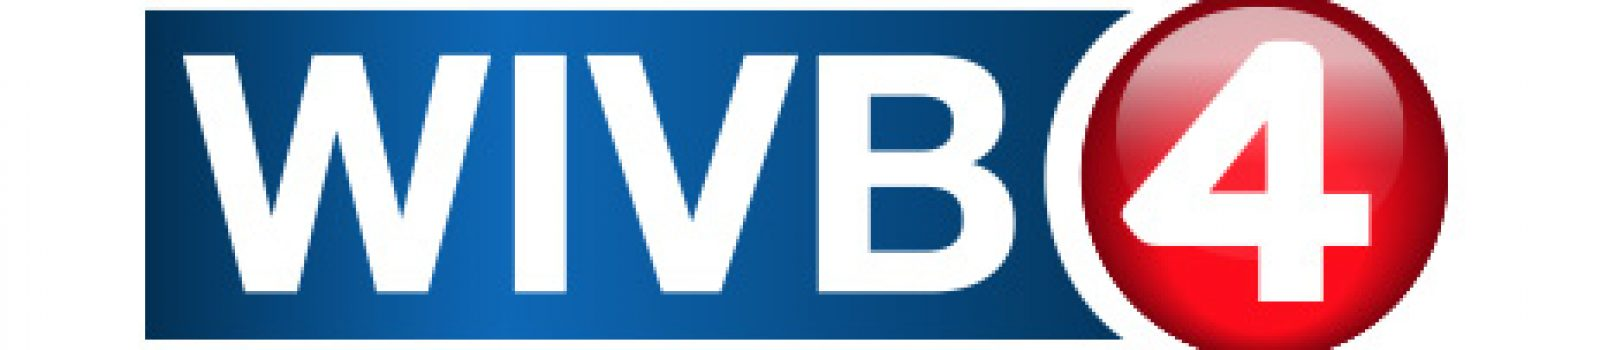 wivb-09292016